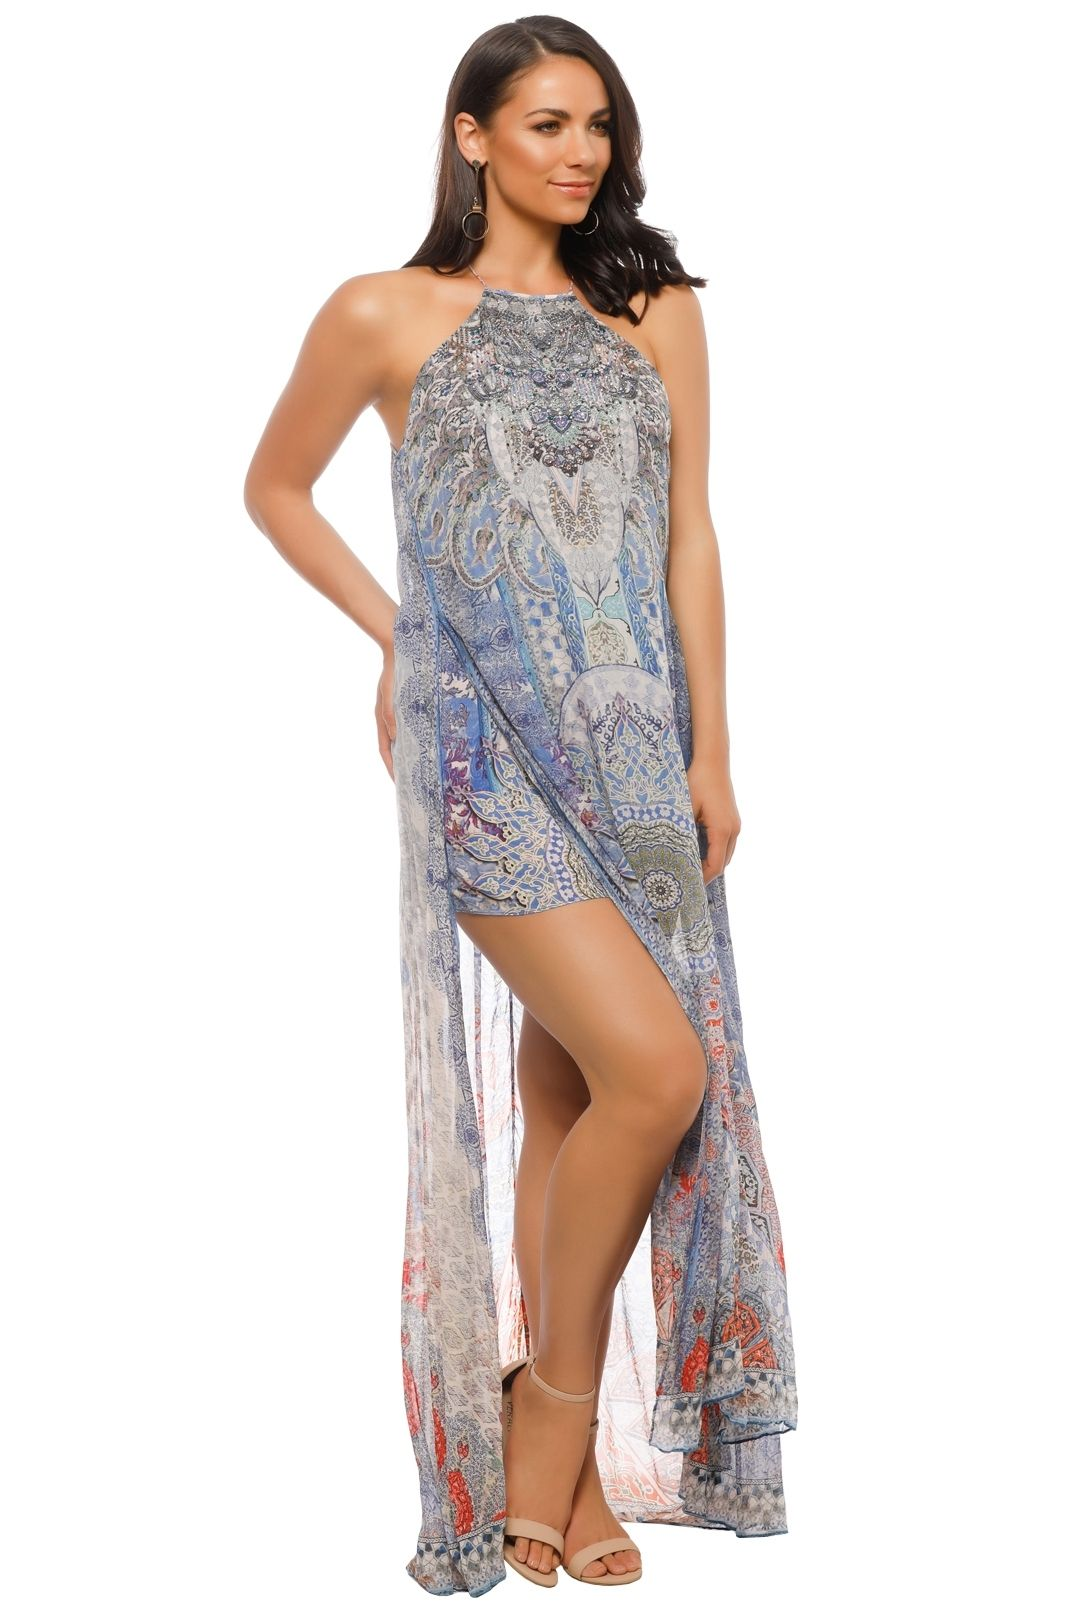 Camilla - Concubine Realm Sheer Overlay Dress - Blue Prints - Front